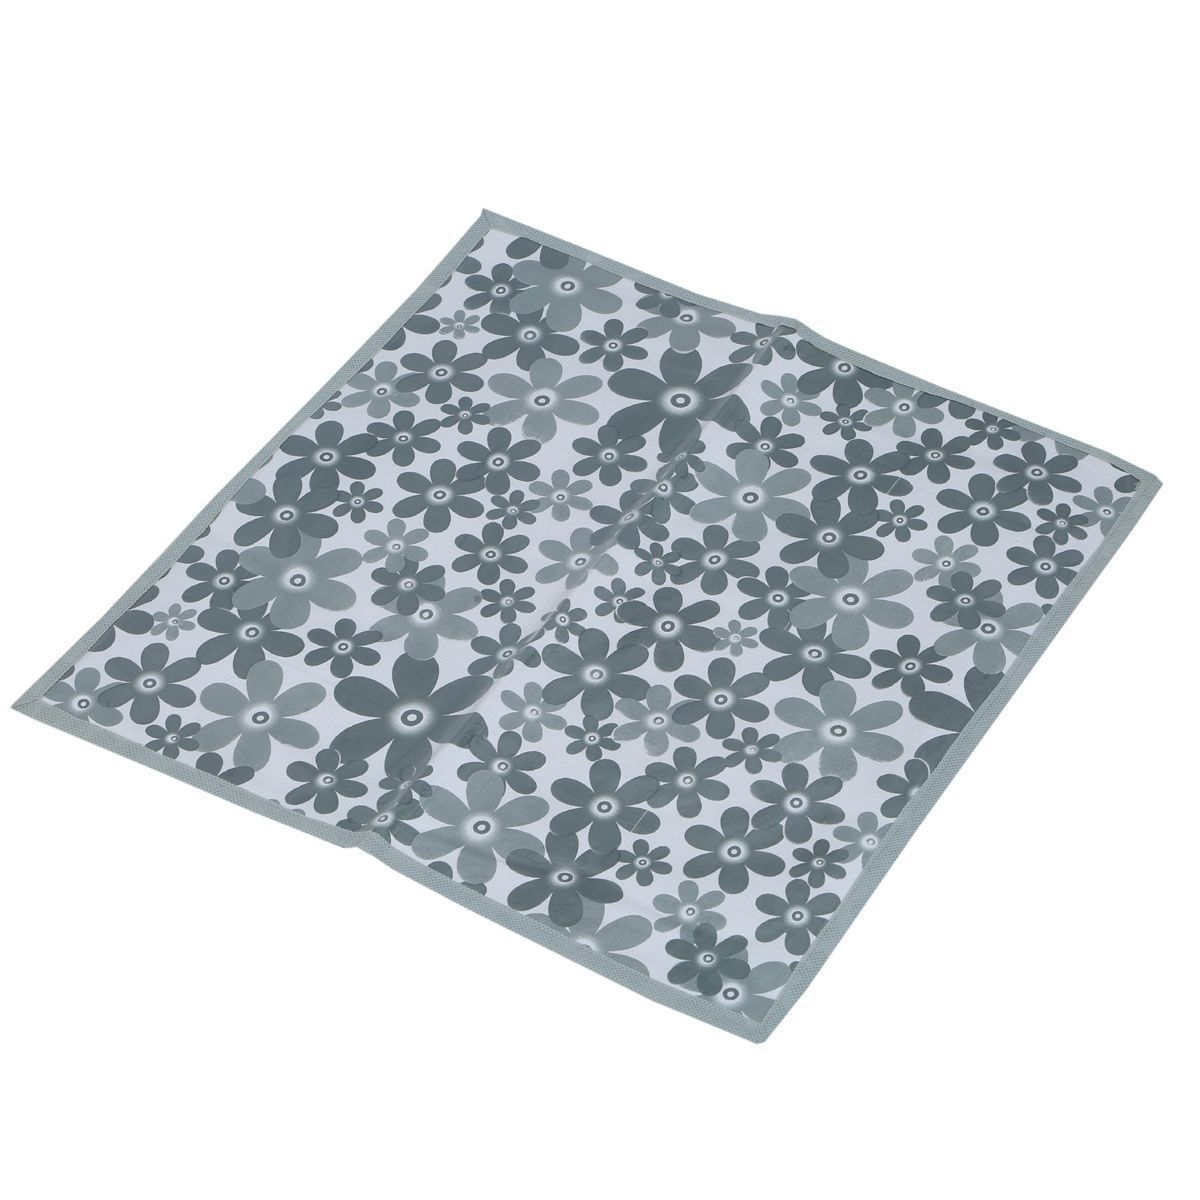 "Kuber Industriesâ""¢ Bed Server/Food Mat Small In Double Layer Imported Net Sheet Waterproof (Exclusive Product) -KI19373"